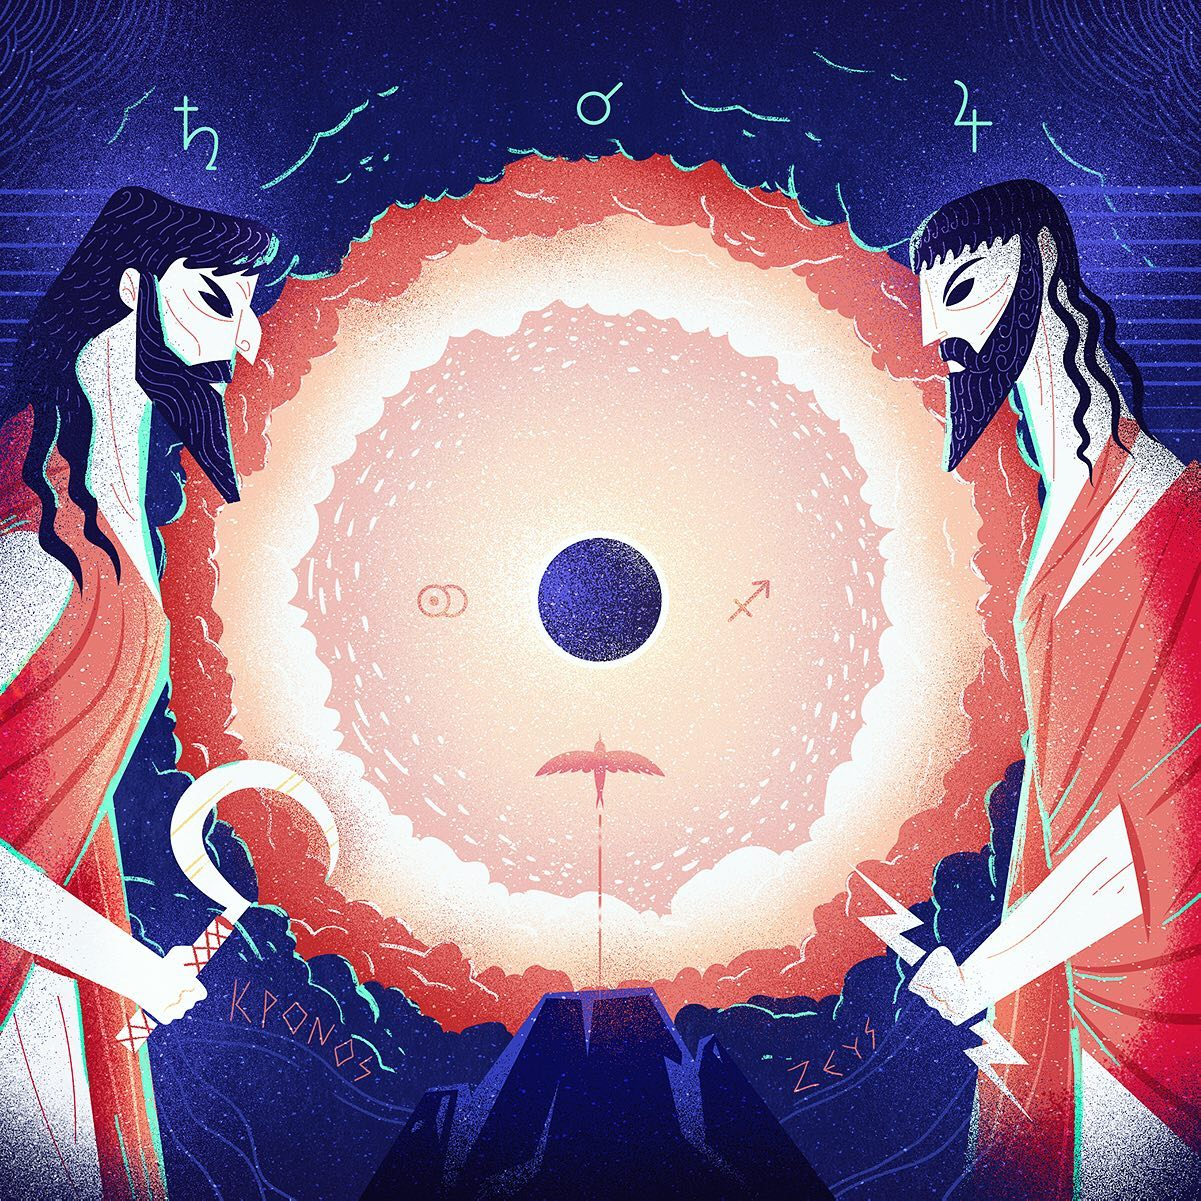 :::Cronus vs Zeus (Saturn vs Jupiter):::The eternal fight between Father & Son, the ultimate confrontation in the War of Titans, the Great Conjunction...